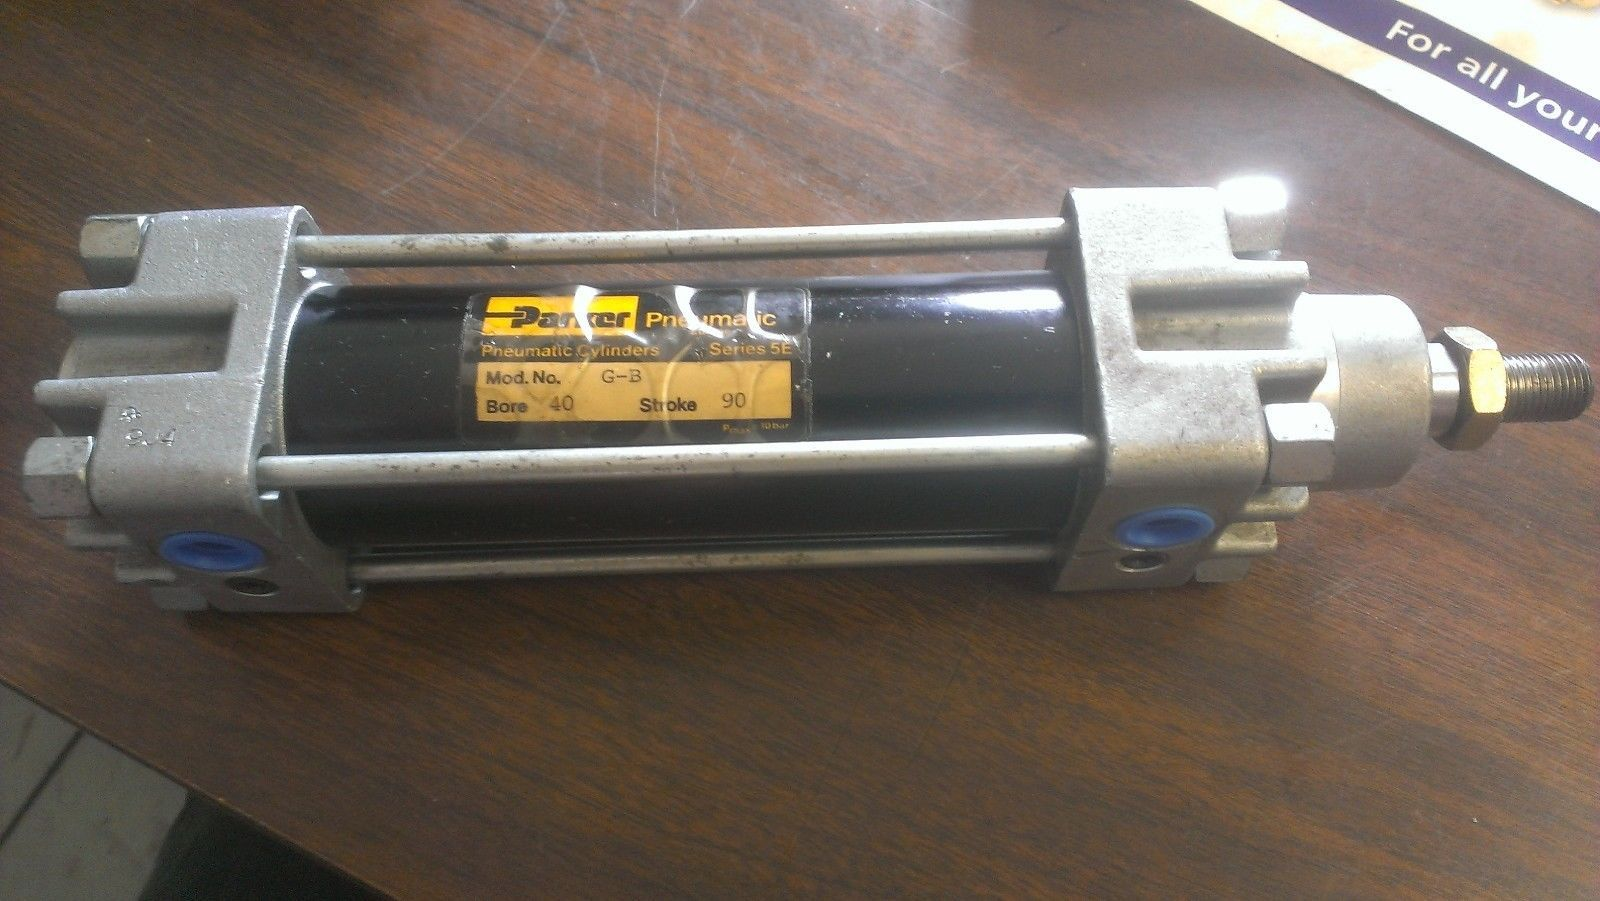 Primary image for Parker Pneumatic Air Cylinder  40MM Bore X 90MM Stroke Model G-B